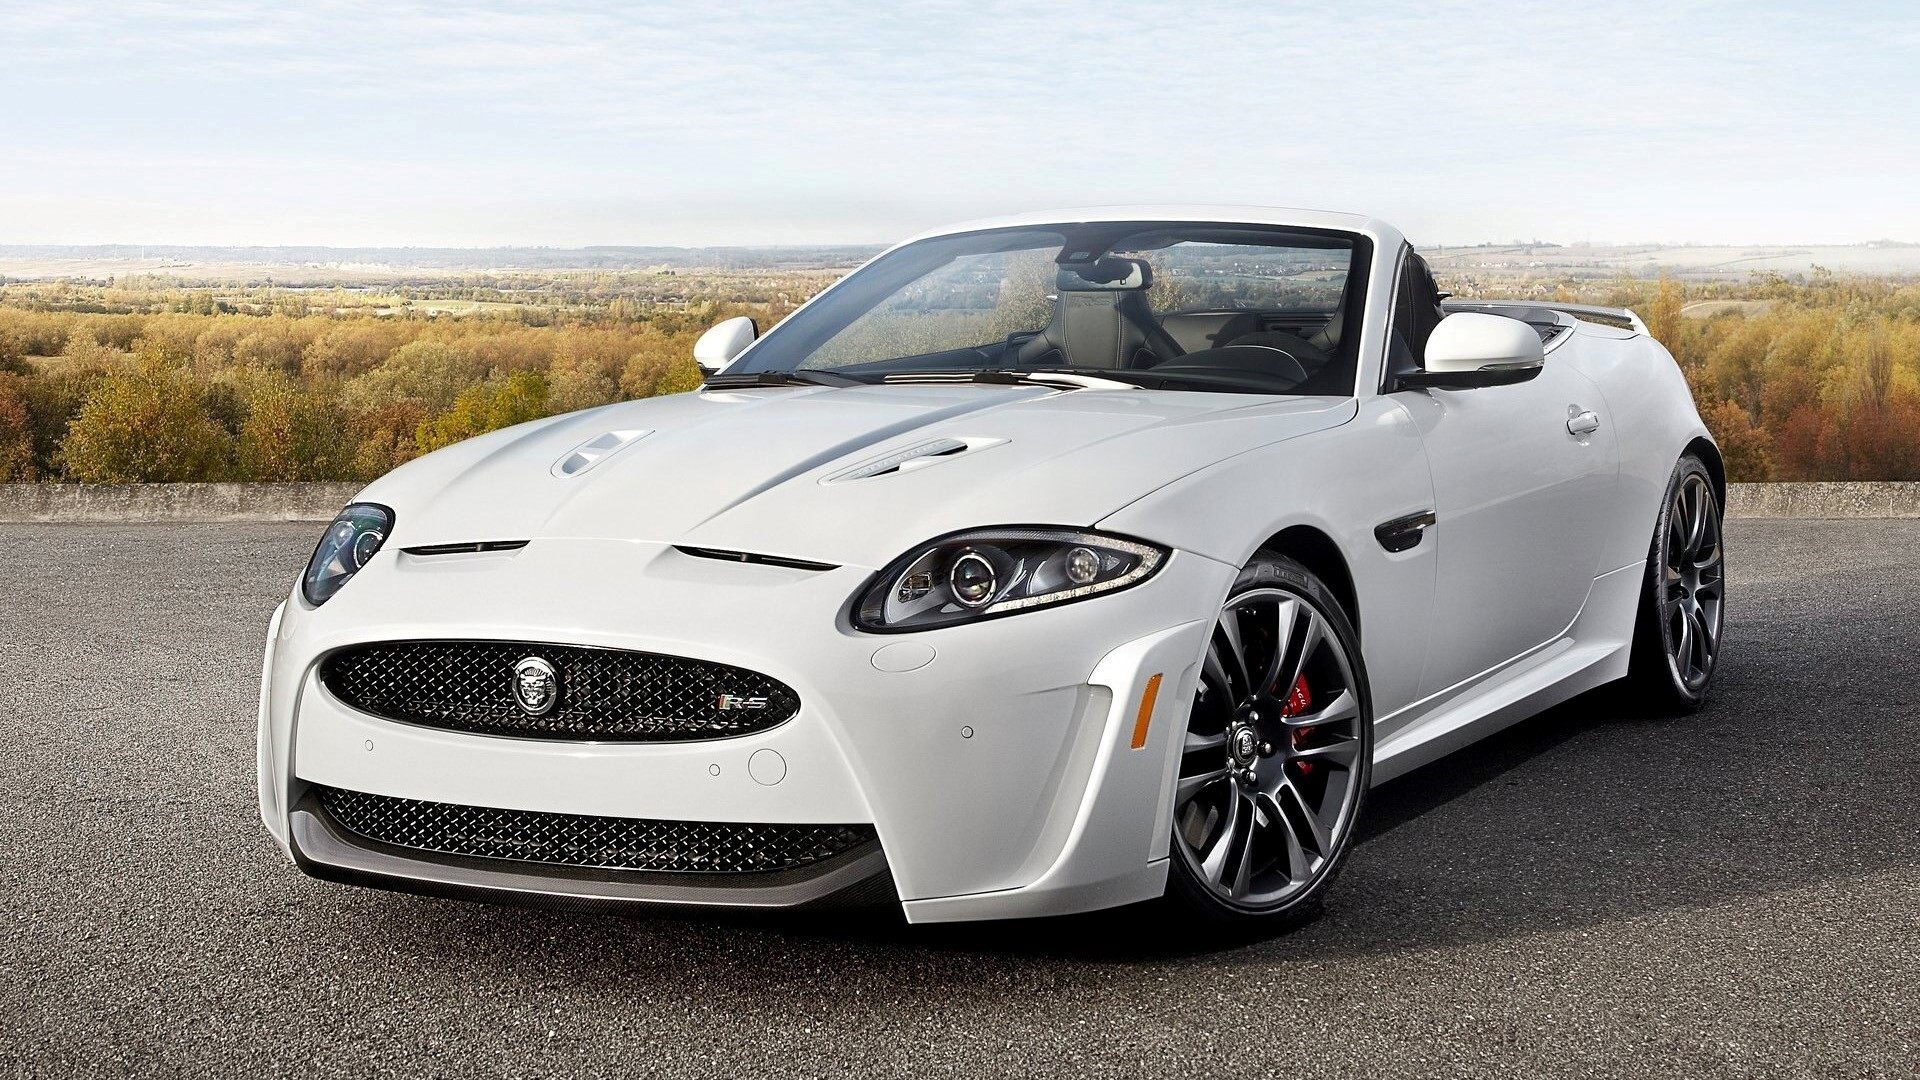 jaguar coupe xkr s white 2013 luxury convertible car wallpaper | hd